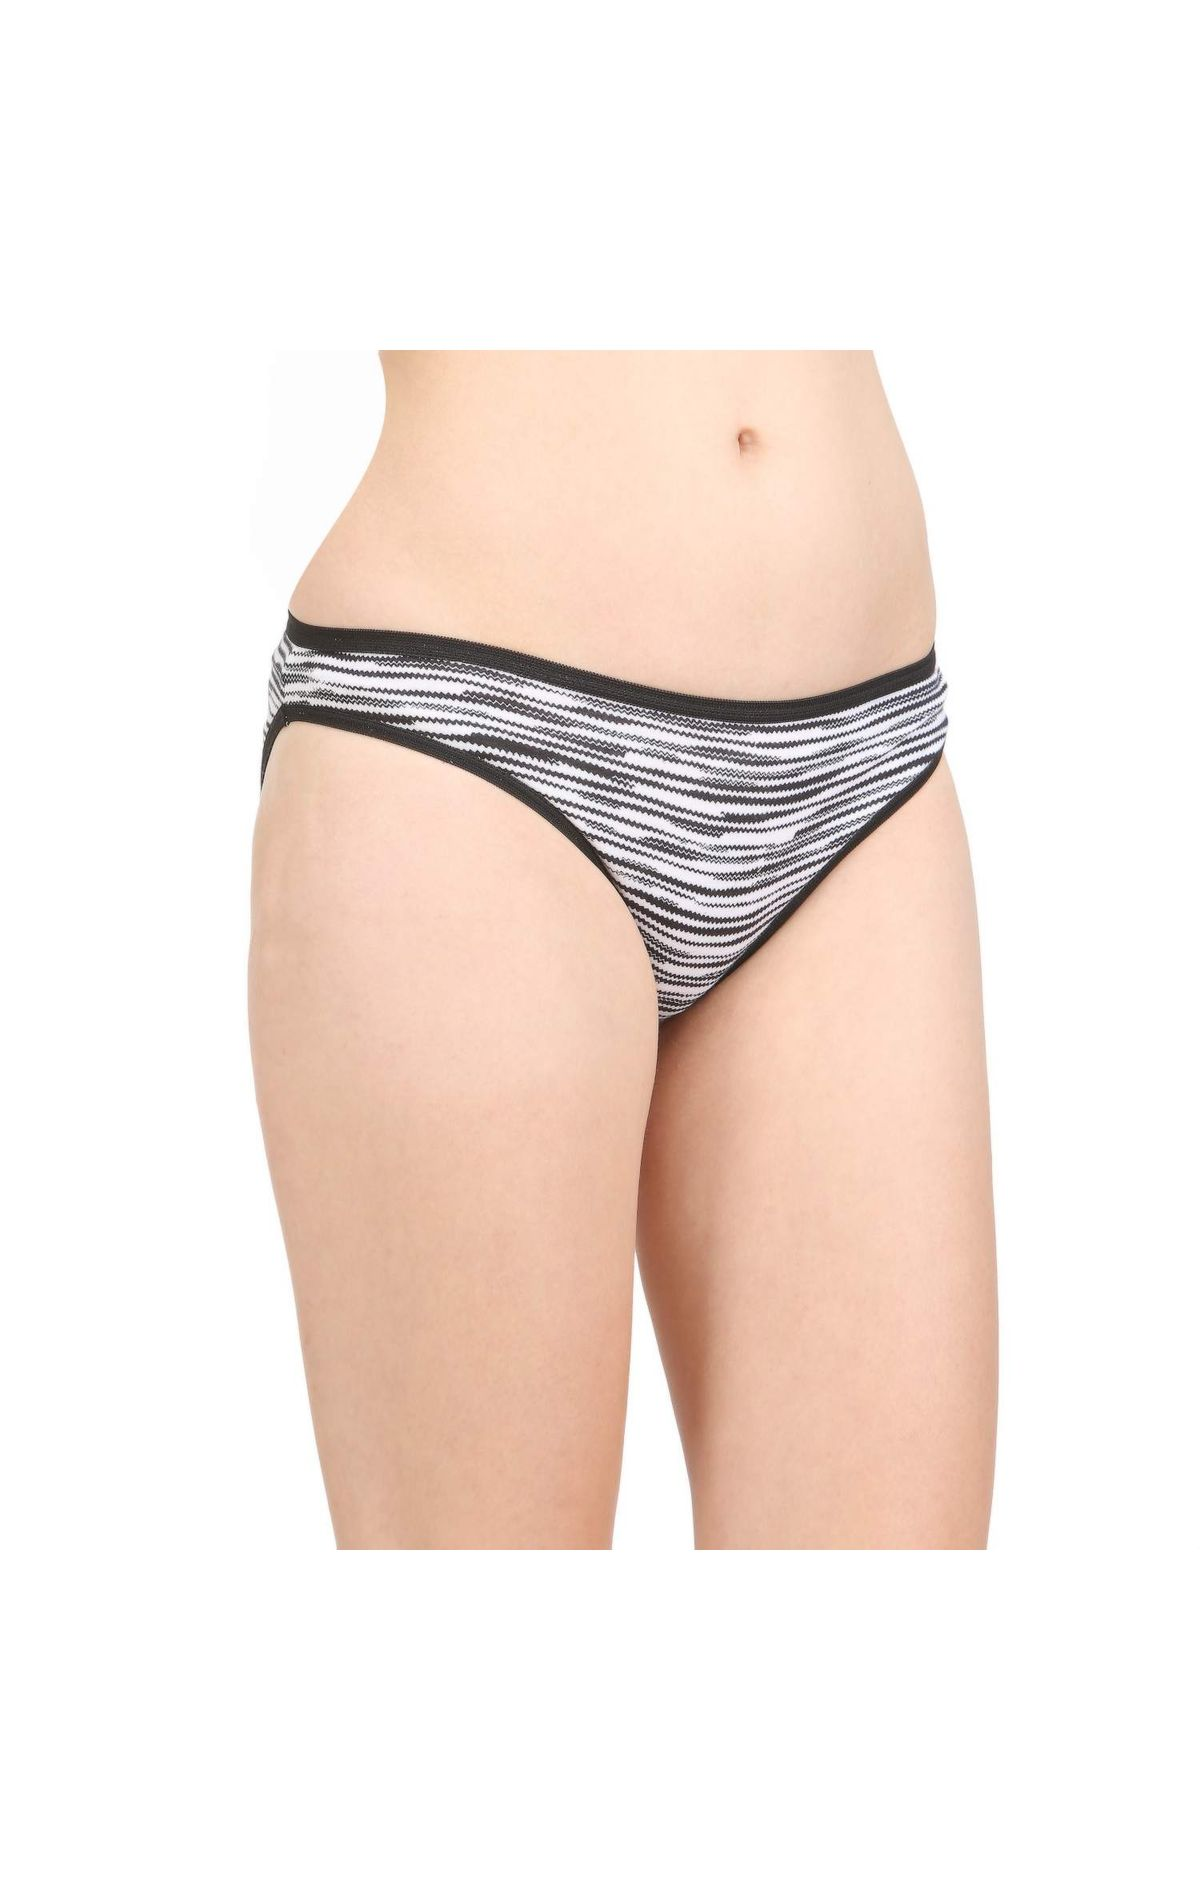 Bodycare 100 Cotton High Cut Panty